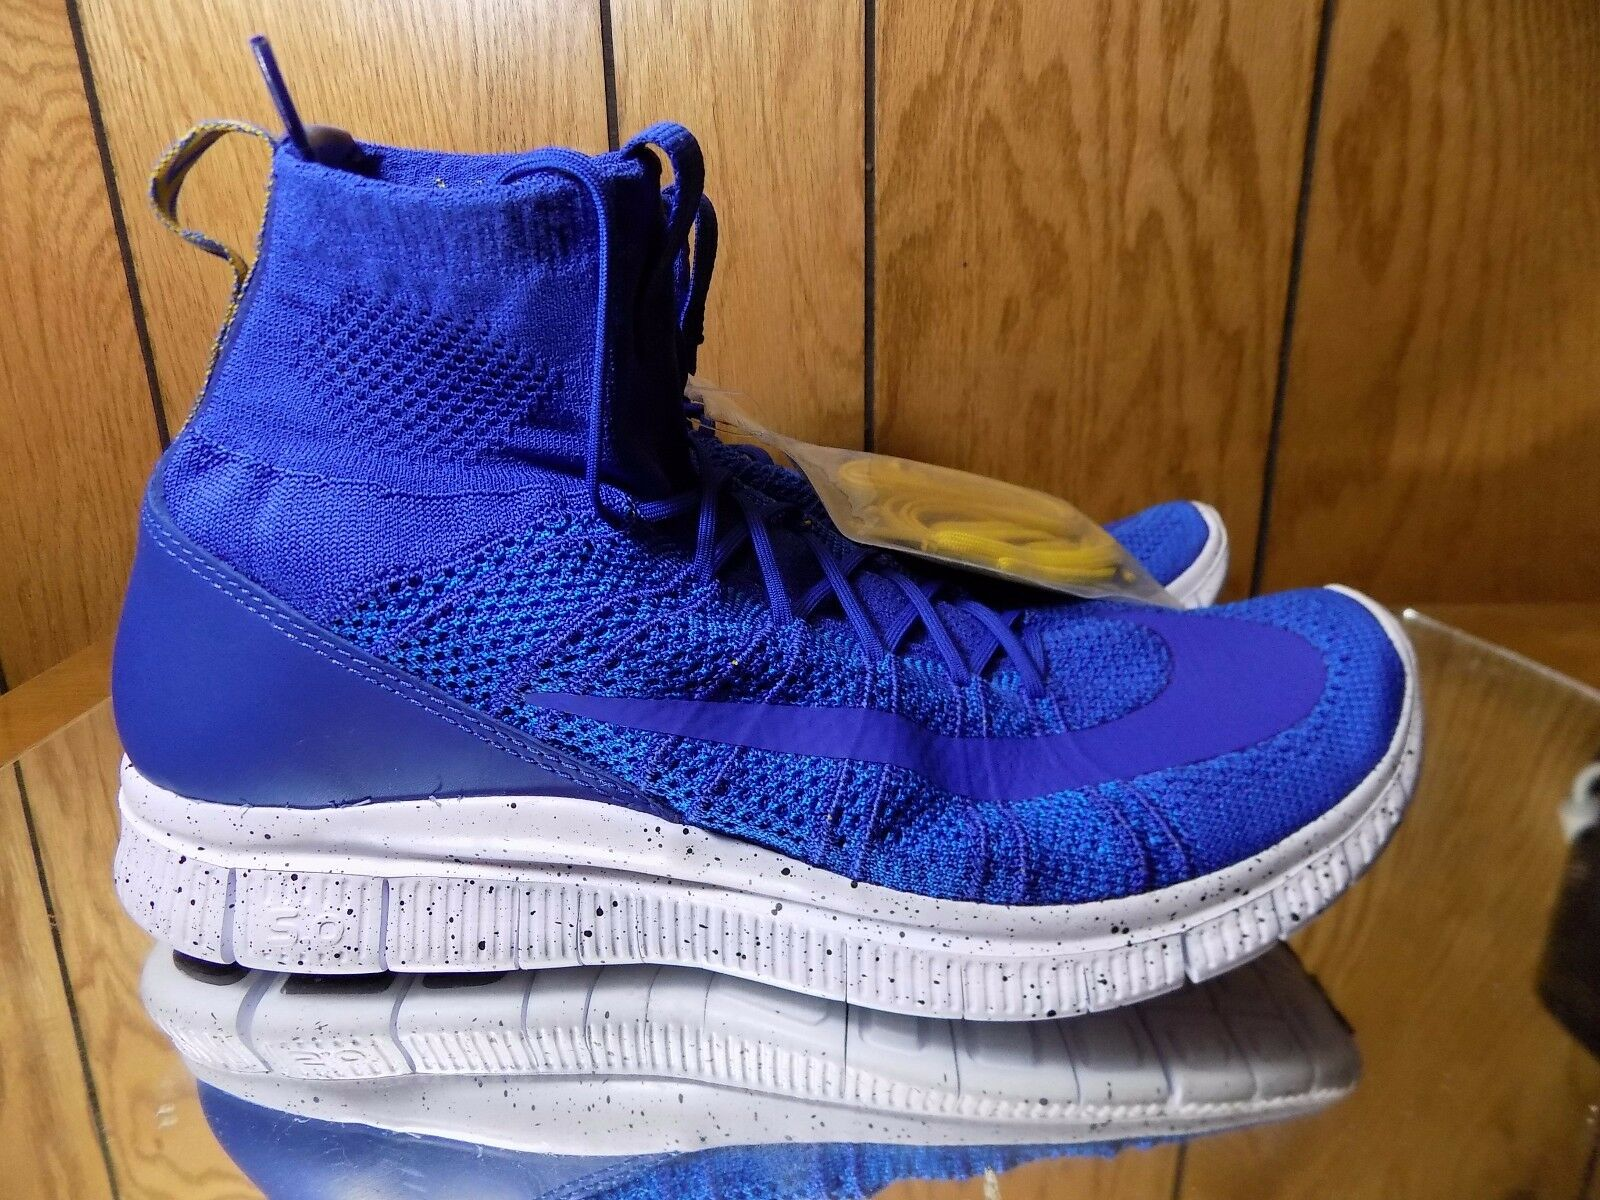 83422682453 New Nike Free Free Free Flyknit Mercurial shoes Trainers Sport Athletic  bluee 805554 400 s. 484810